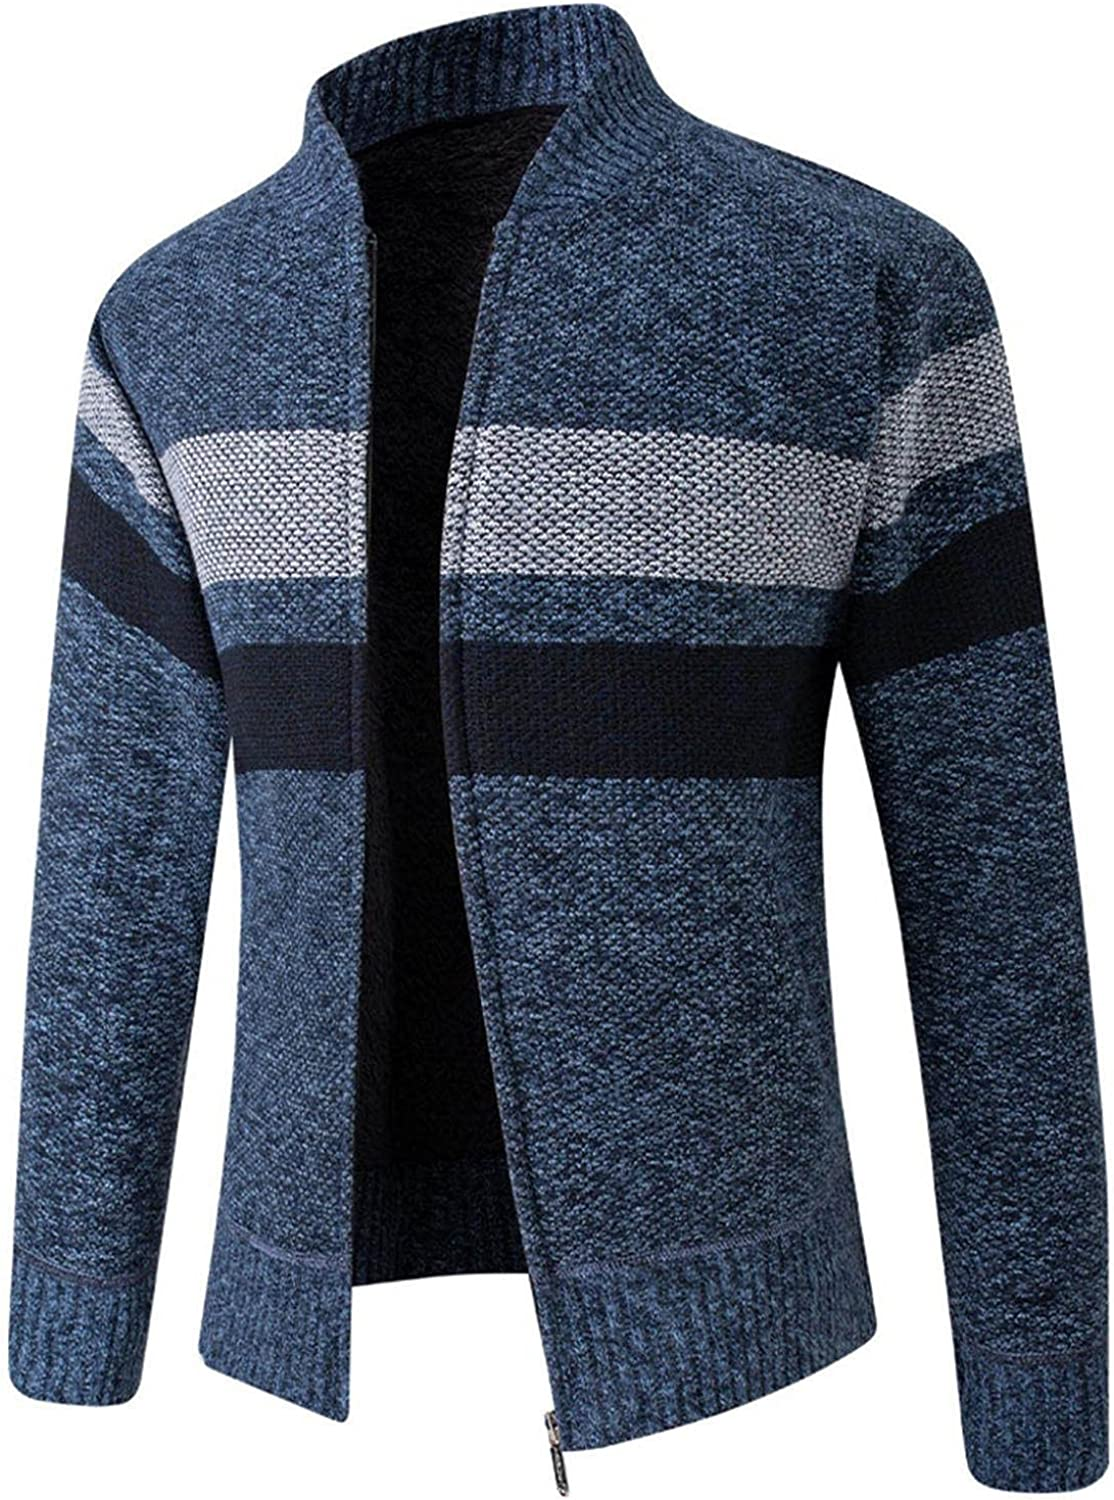 Huangse Mens Sweater Casual Slim Full Zip Thick Knitted Cardigan Stripe Sweaters Crewneck Cardigan Sweater with Pockets